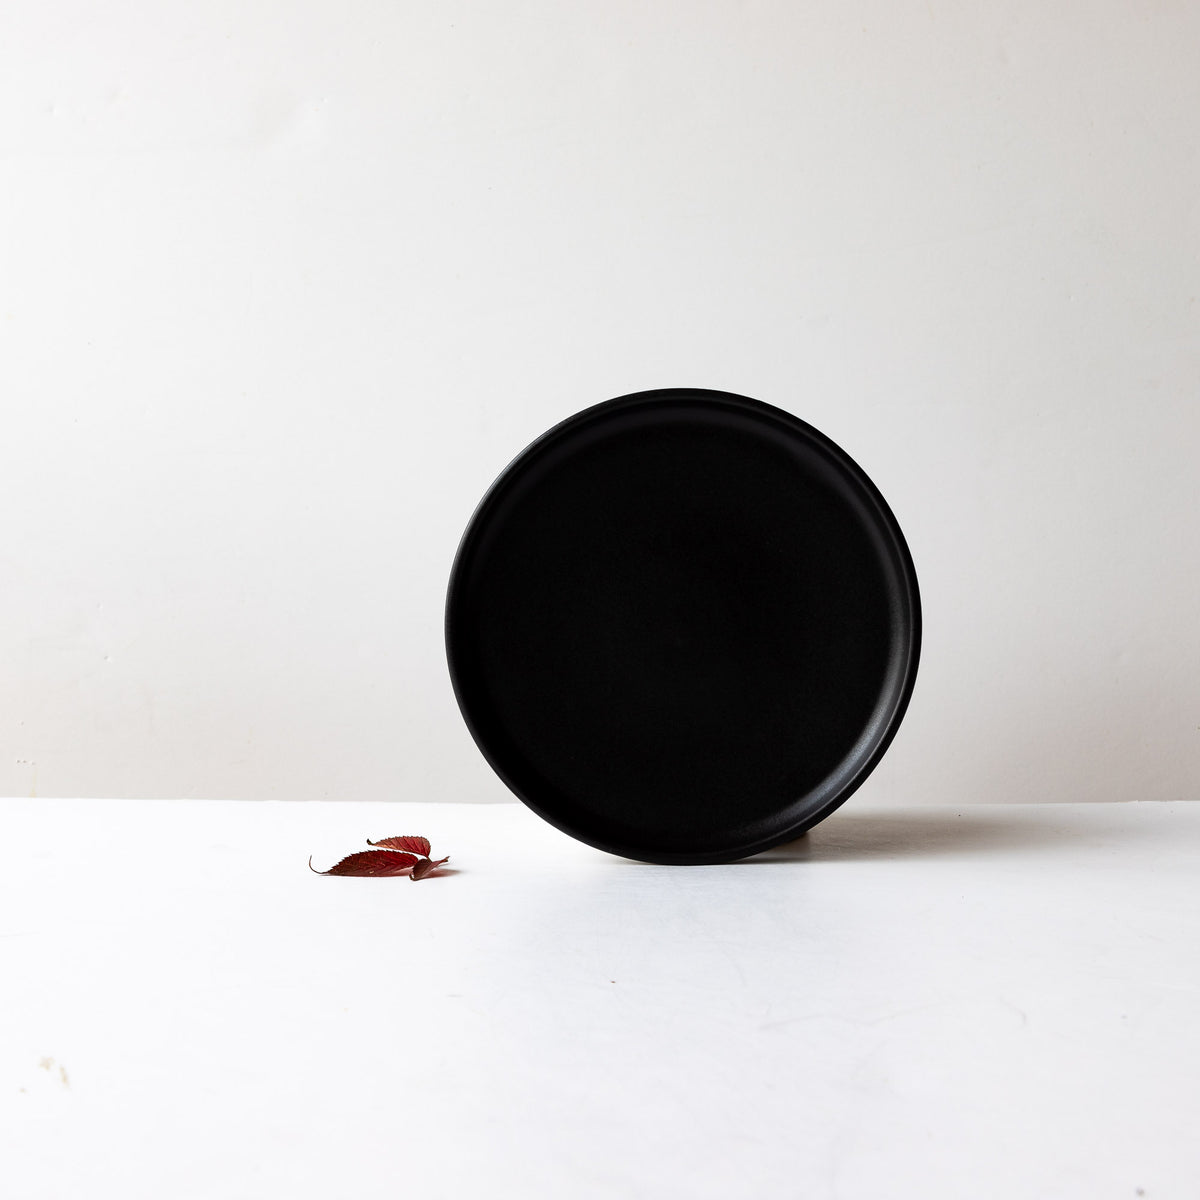 Black Satin Glaze Hand Thrown Small Porcelain Plate - Sold by Chic & Basta